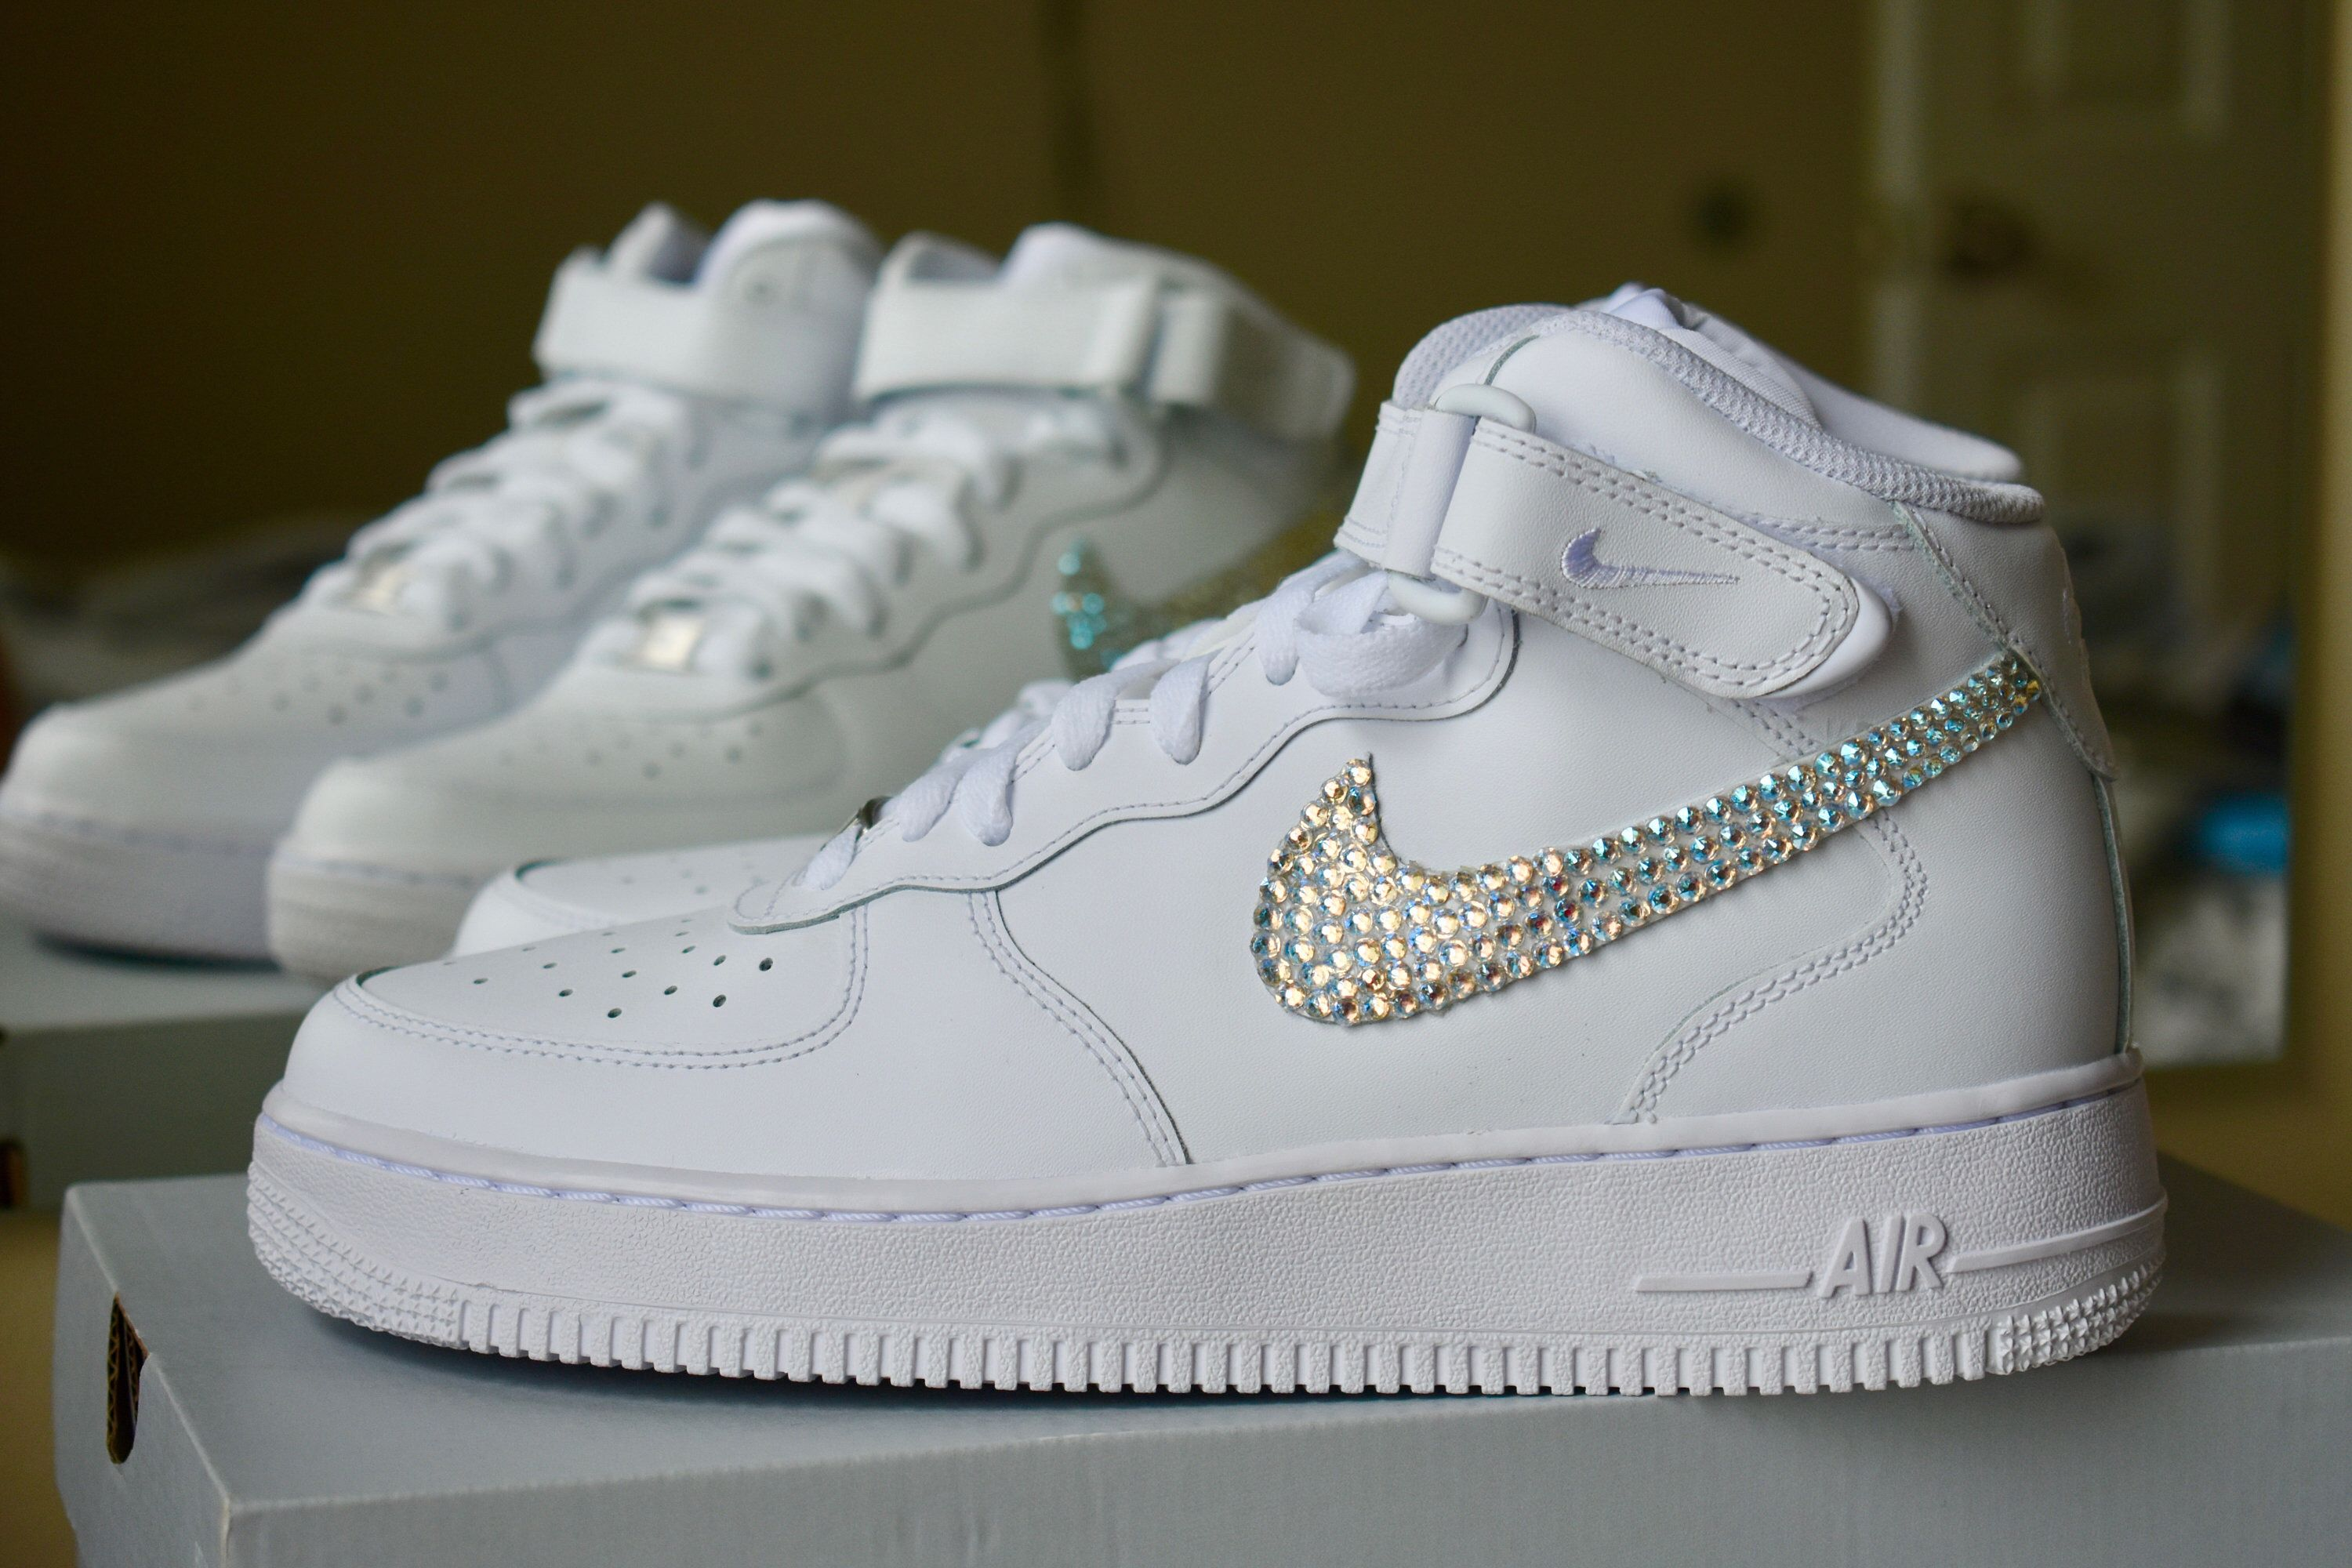 san francisco 0f7c0 84a9b Swarovski Crystal Nike Air Force 1 LOW/MID/HIGH Sneakers in ...